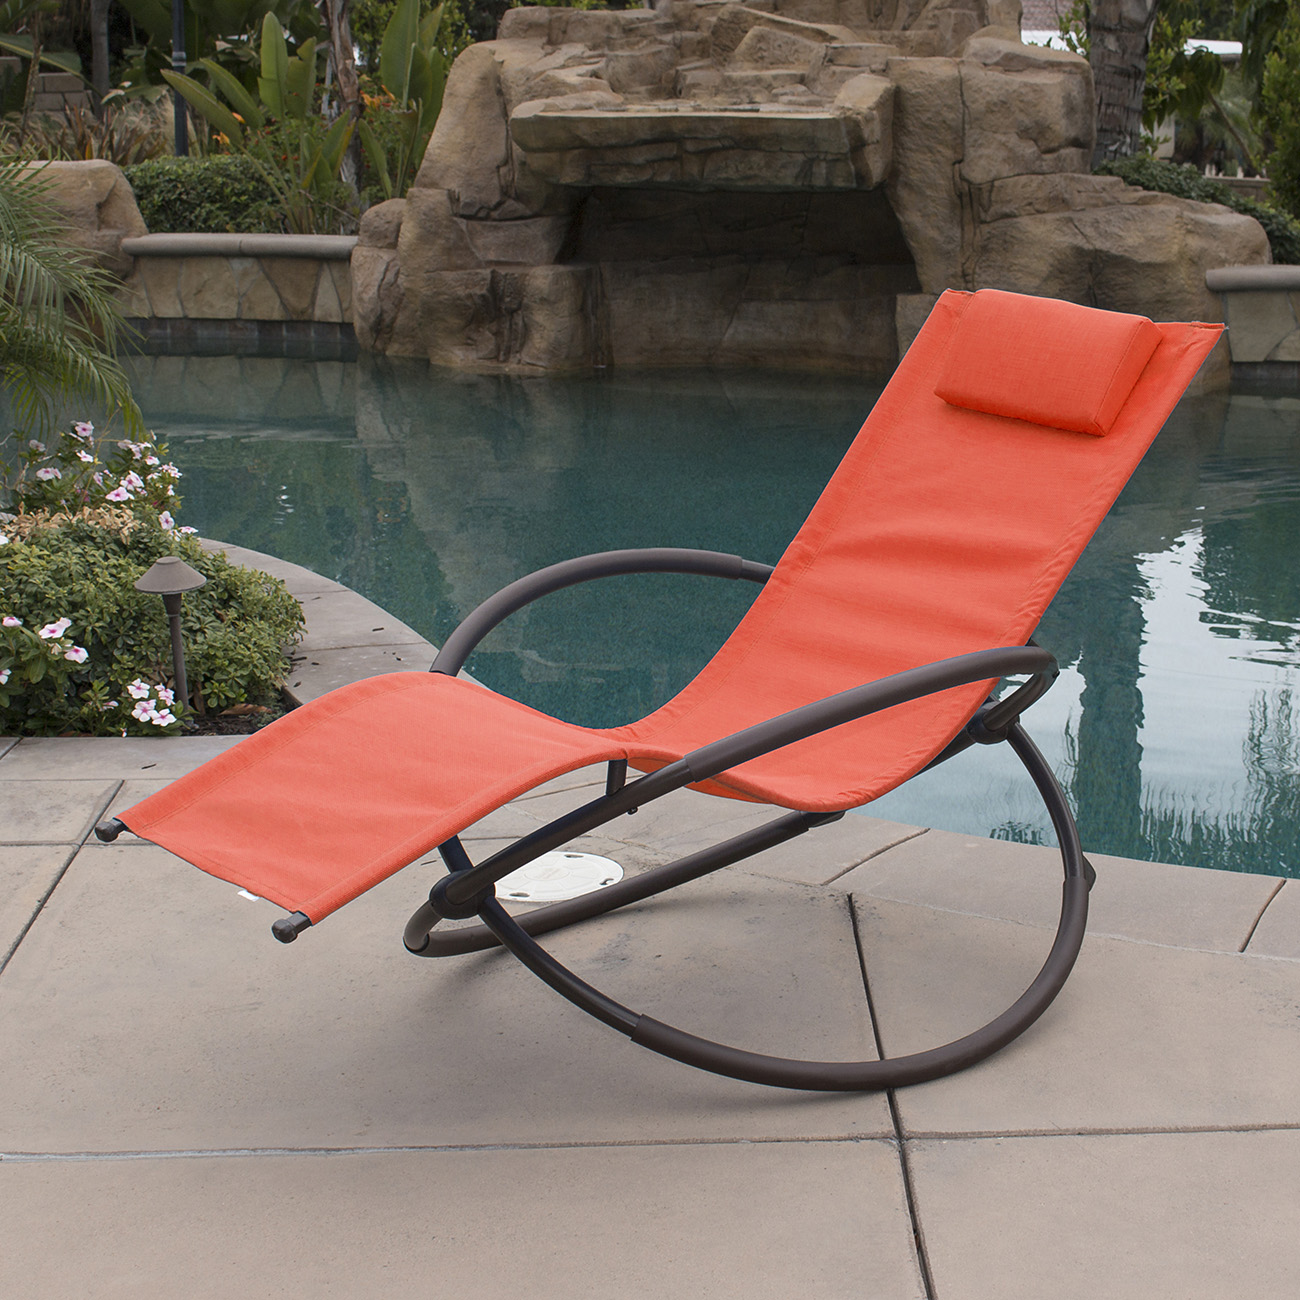 Camping Lounge Chair Orbital Foldable Zero Gravity Lounger Chair Rocking